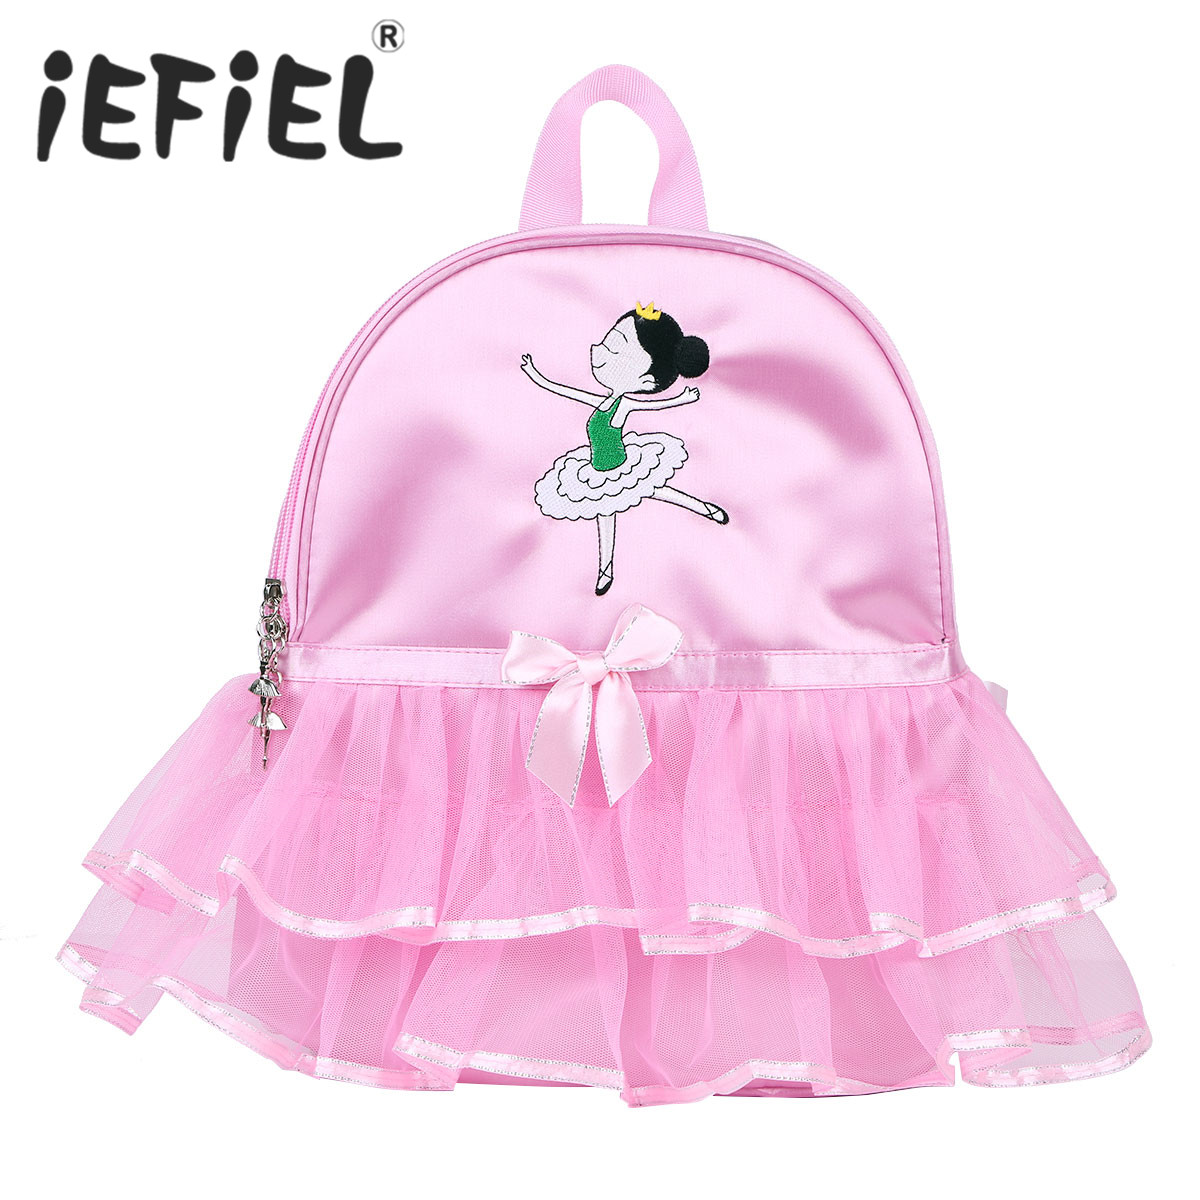 Cute Children Kids Girls Ballet Dance Bag Students School Backpack Cartoon Girls Embroidered Tiered Ruffled Tutu Shoulder Bag